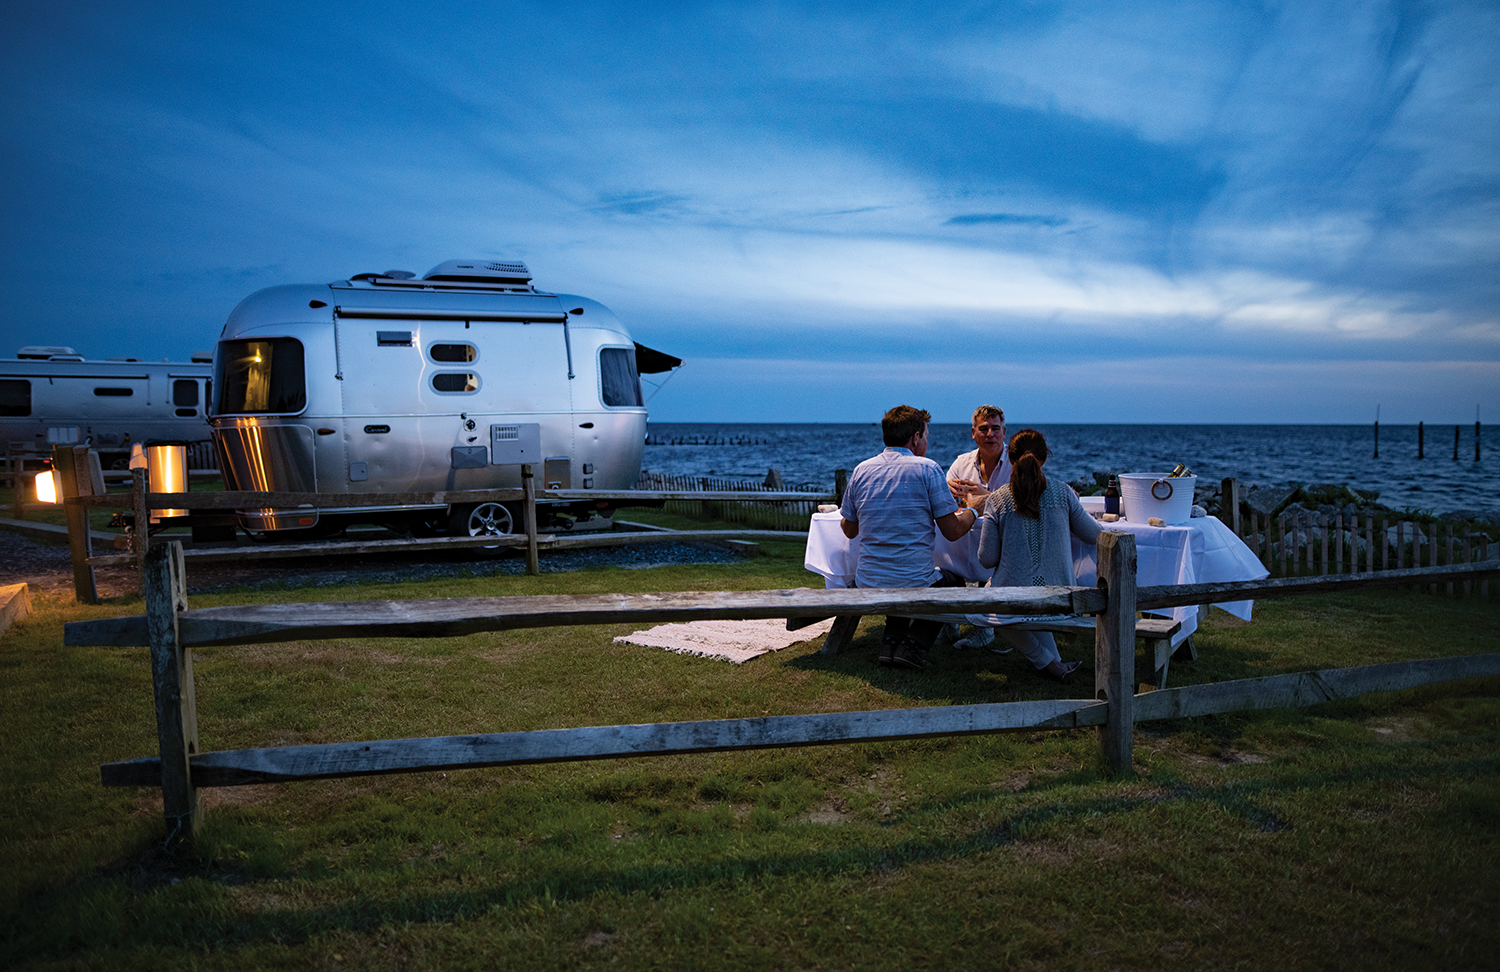 Airstream brings back a pair of classic trailers for modern day life on the road